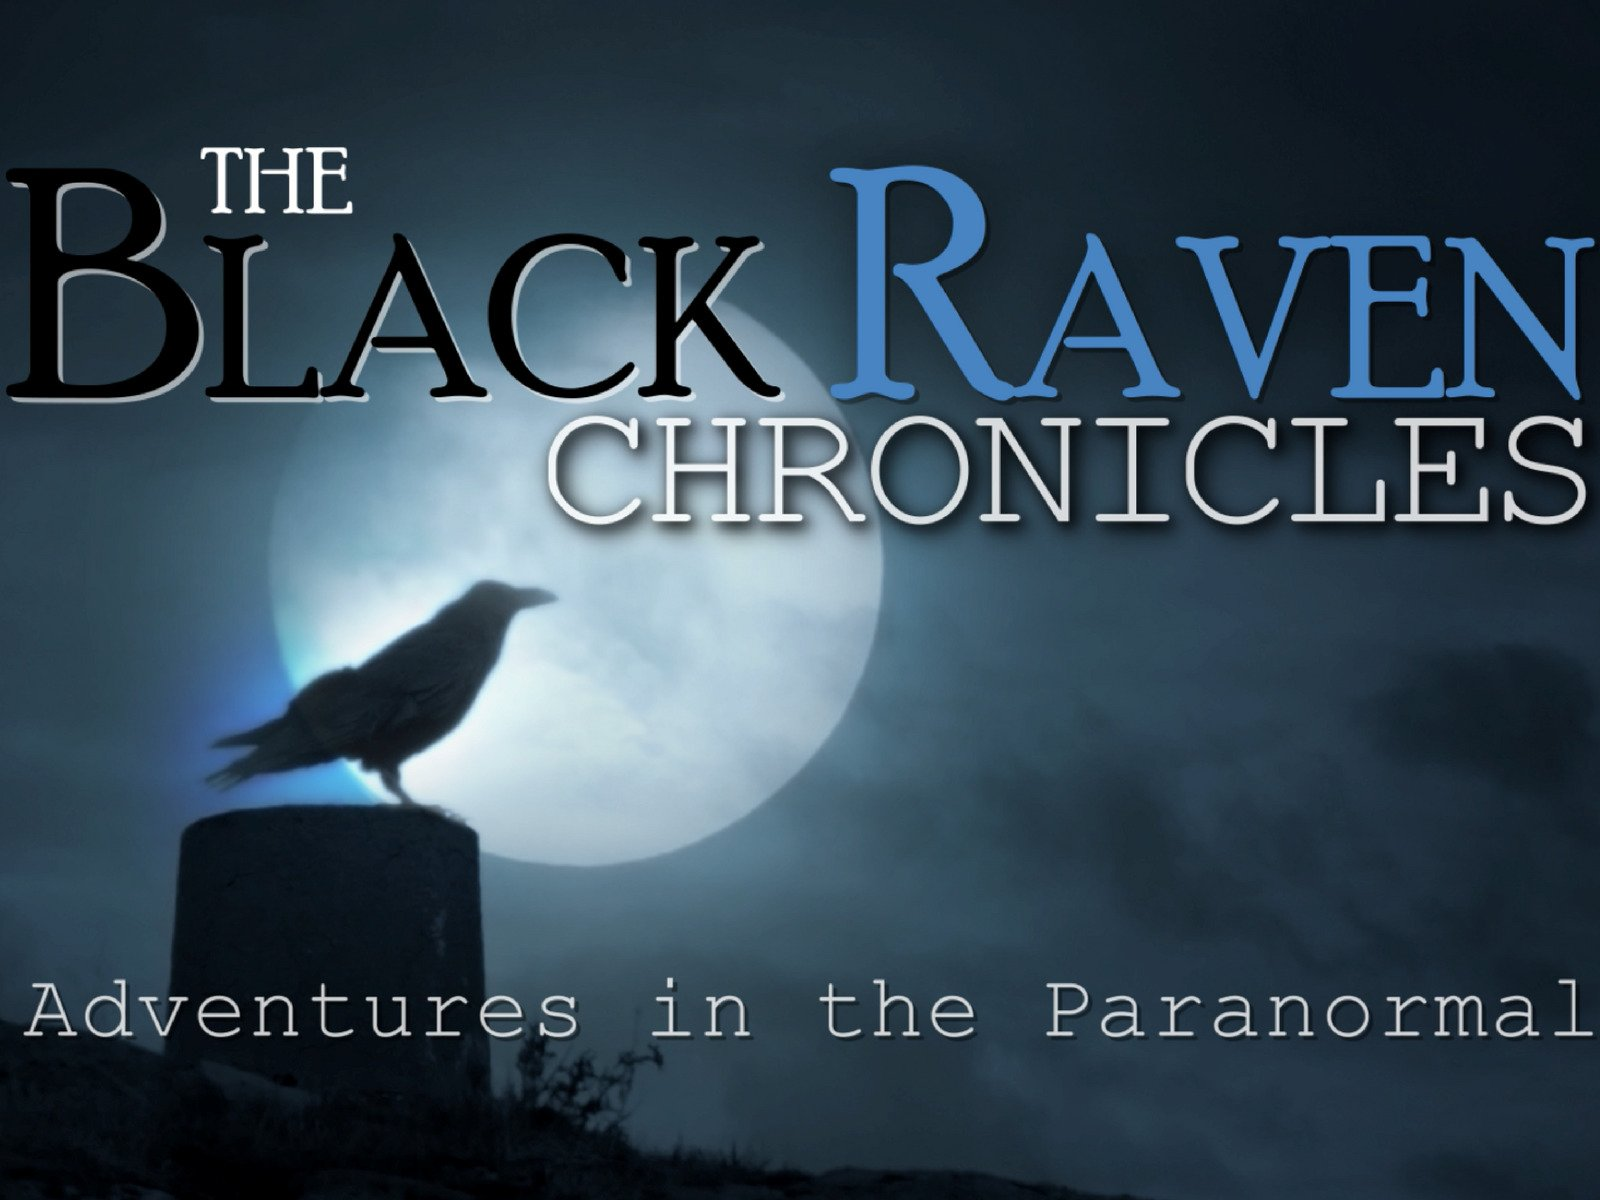 The Black Raven Chronicles - Adventures in the Paranormal